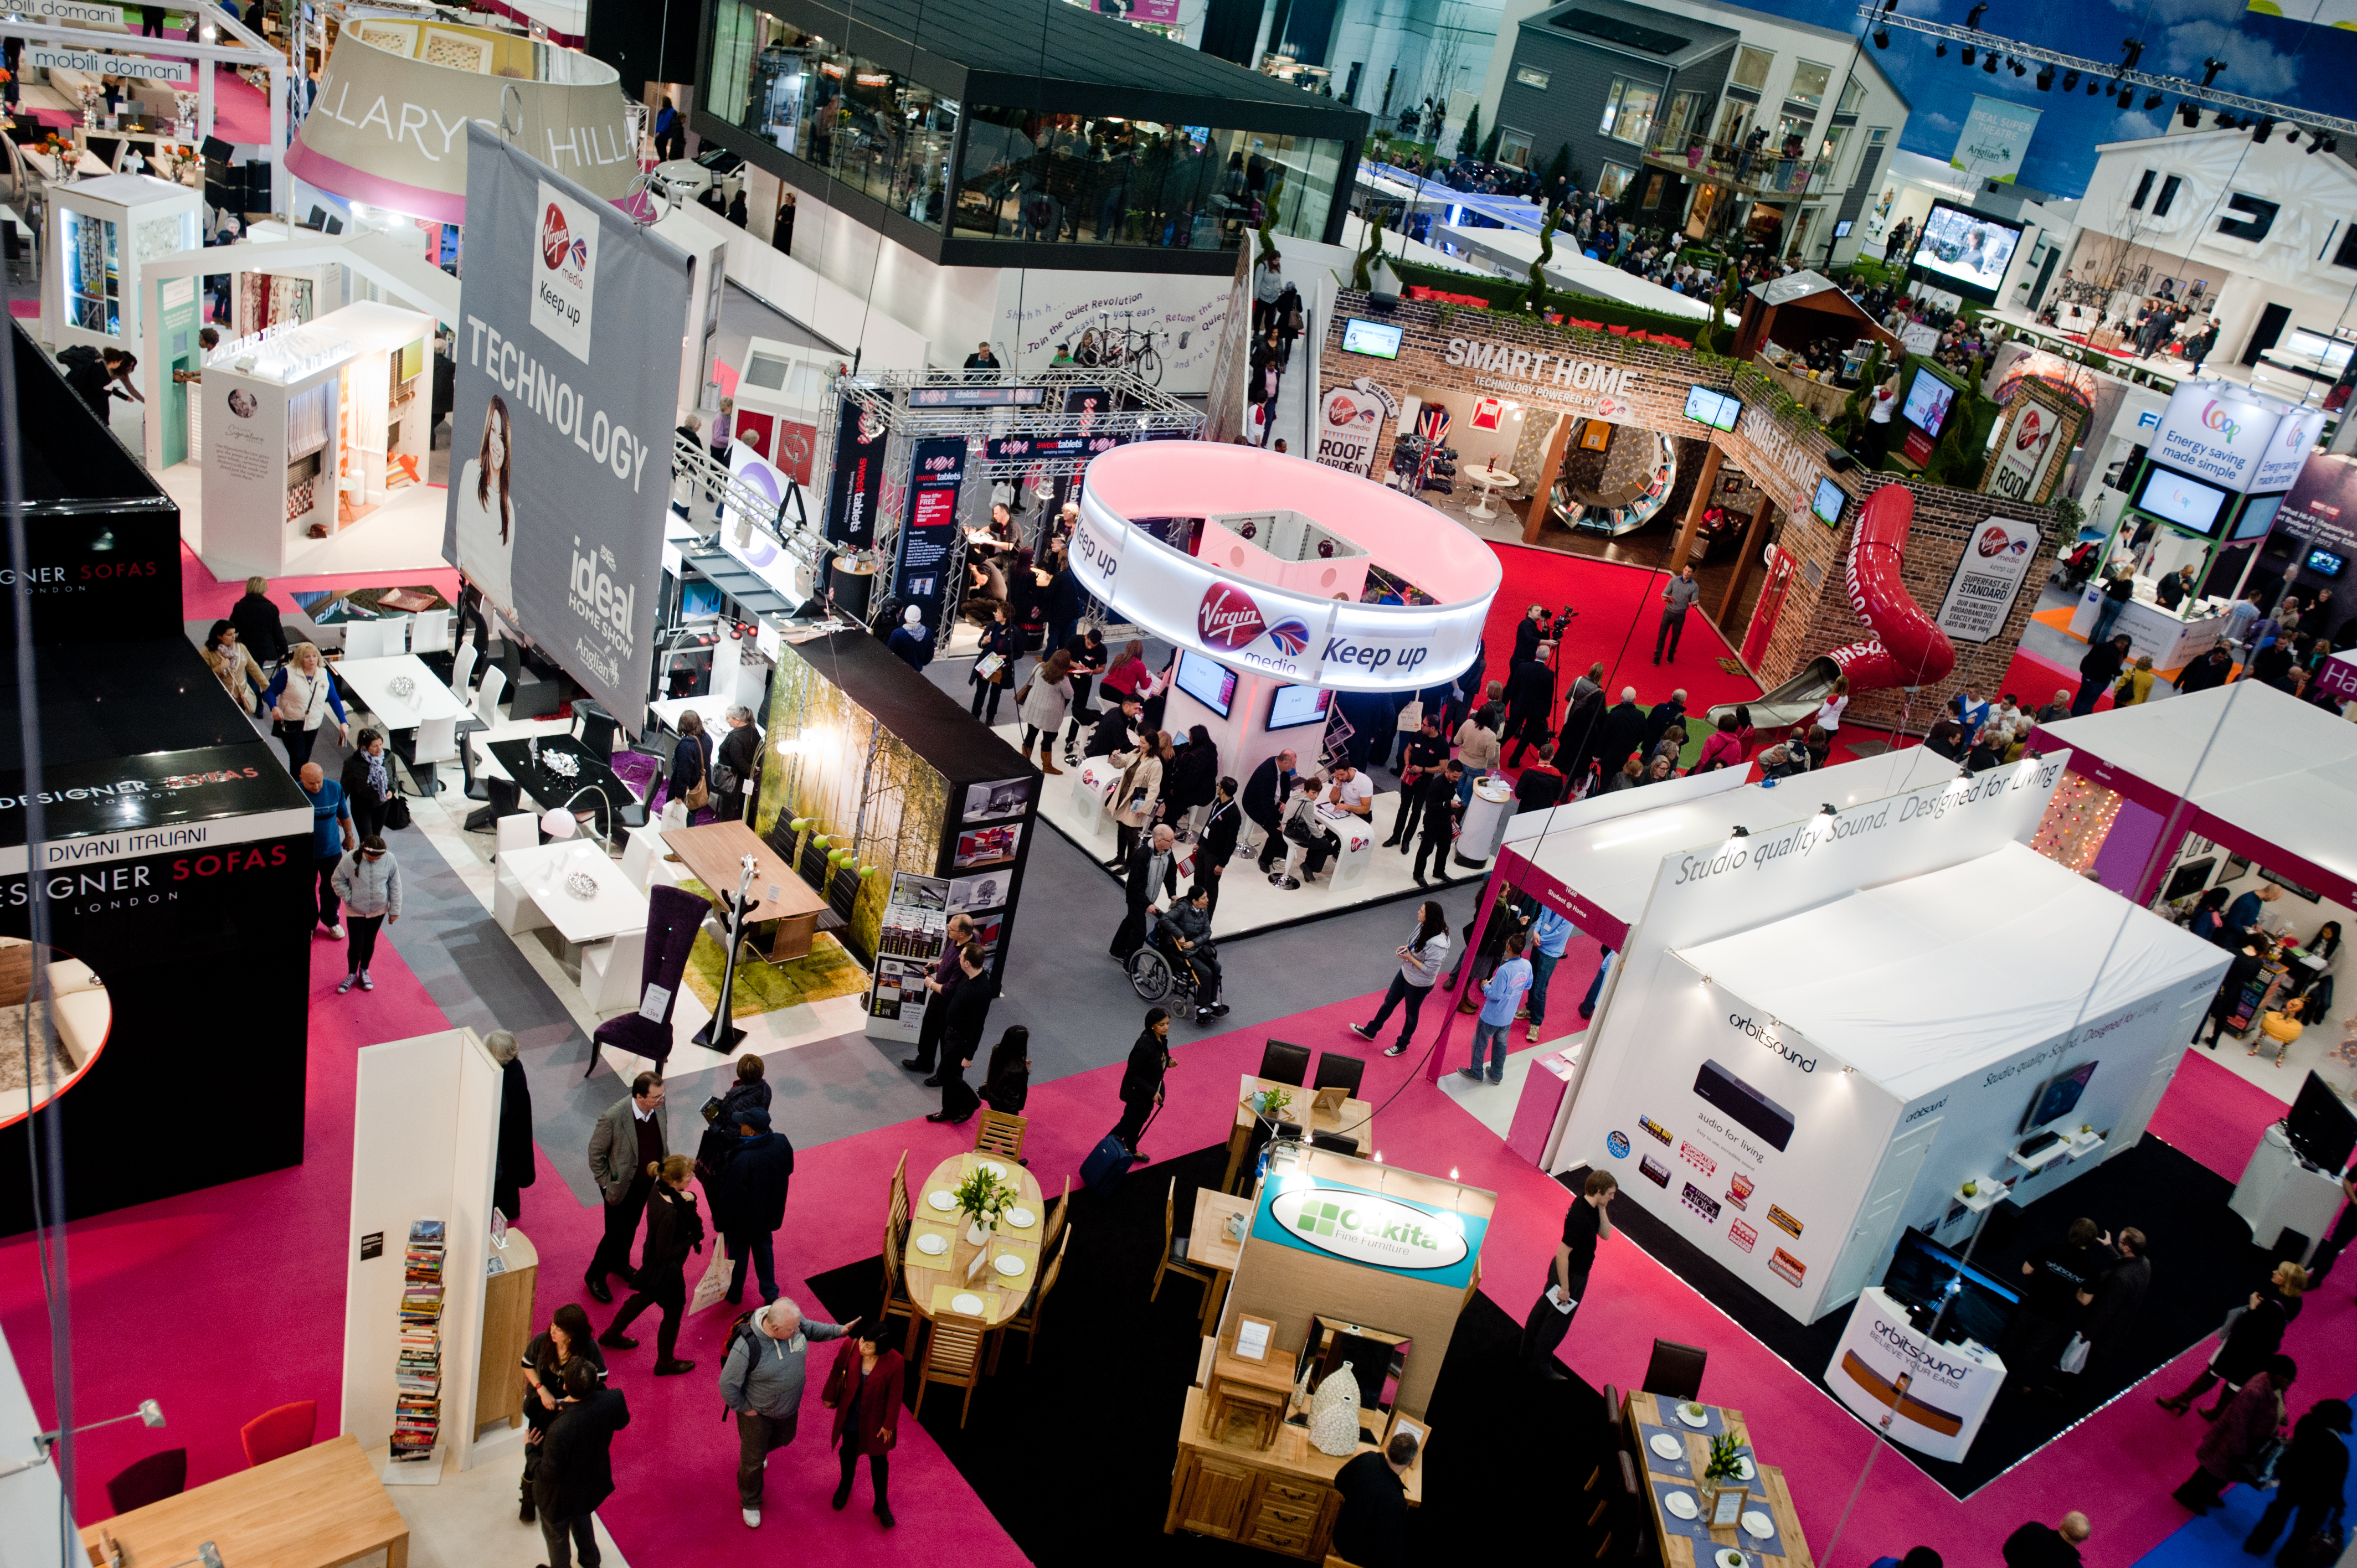 Our approach to event management is unique, we find venues for FREE!